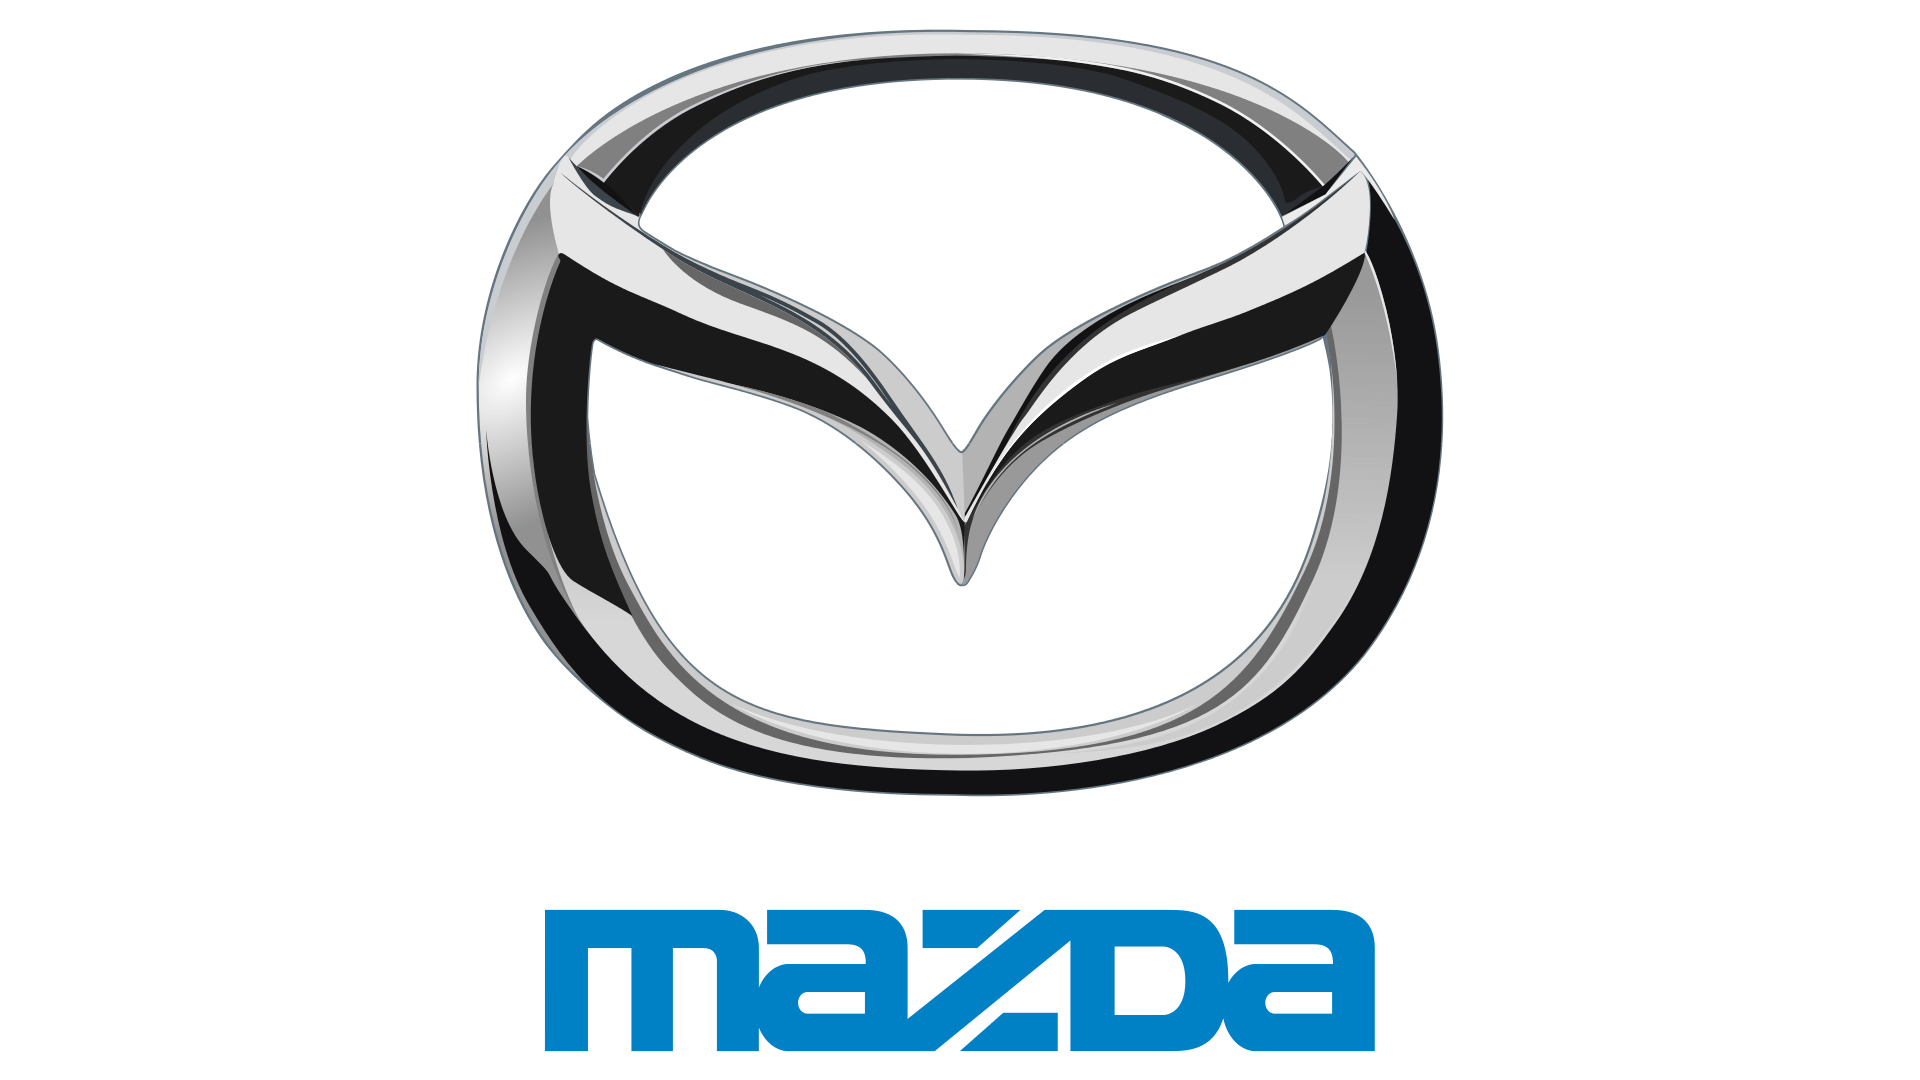 Mazda - get a car loan from carloans.credit